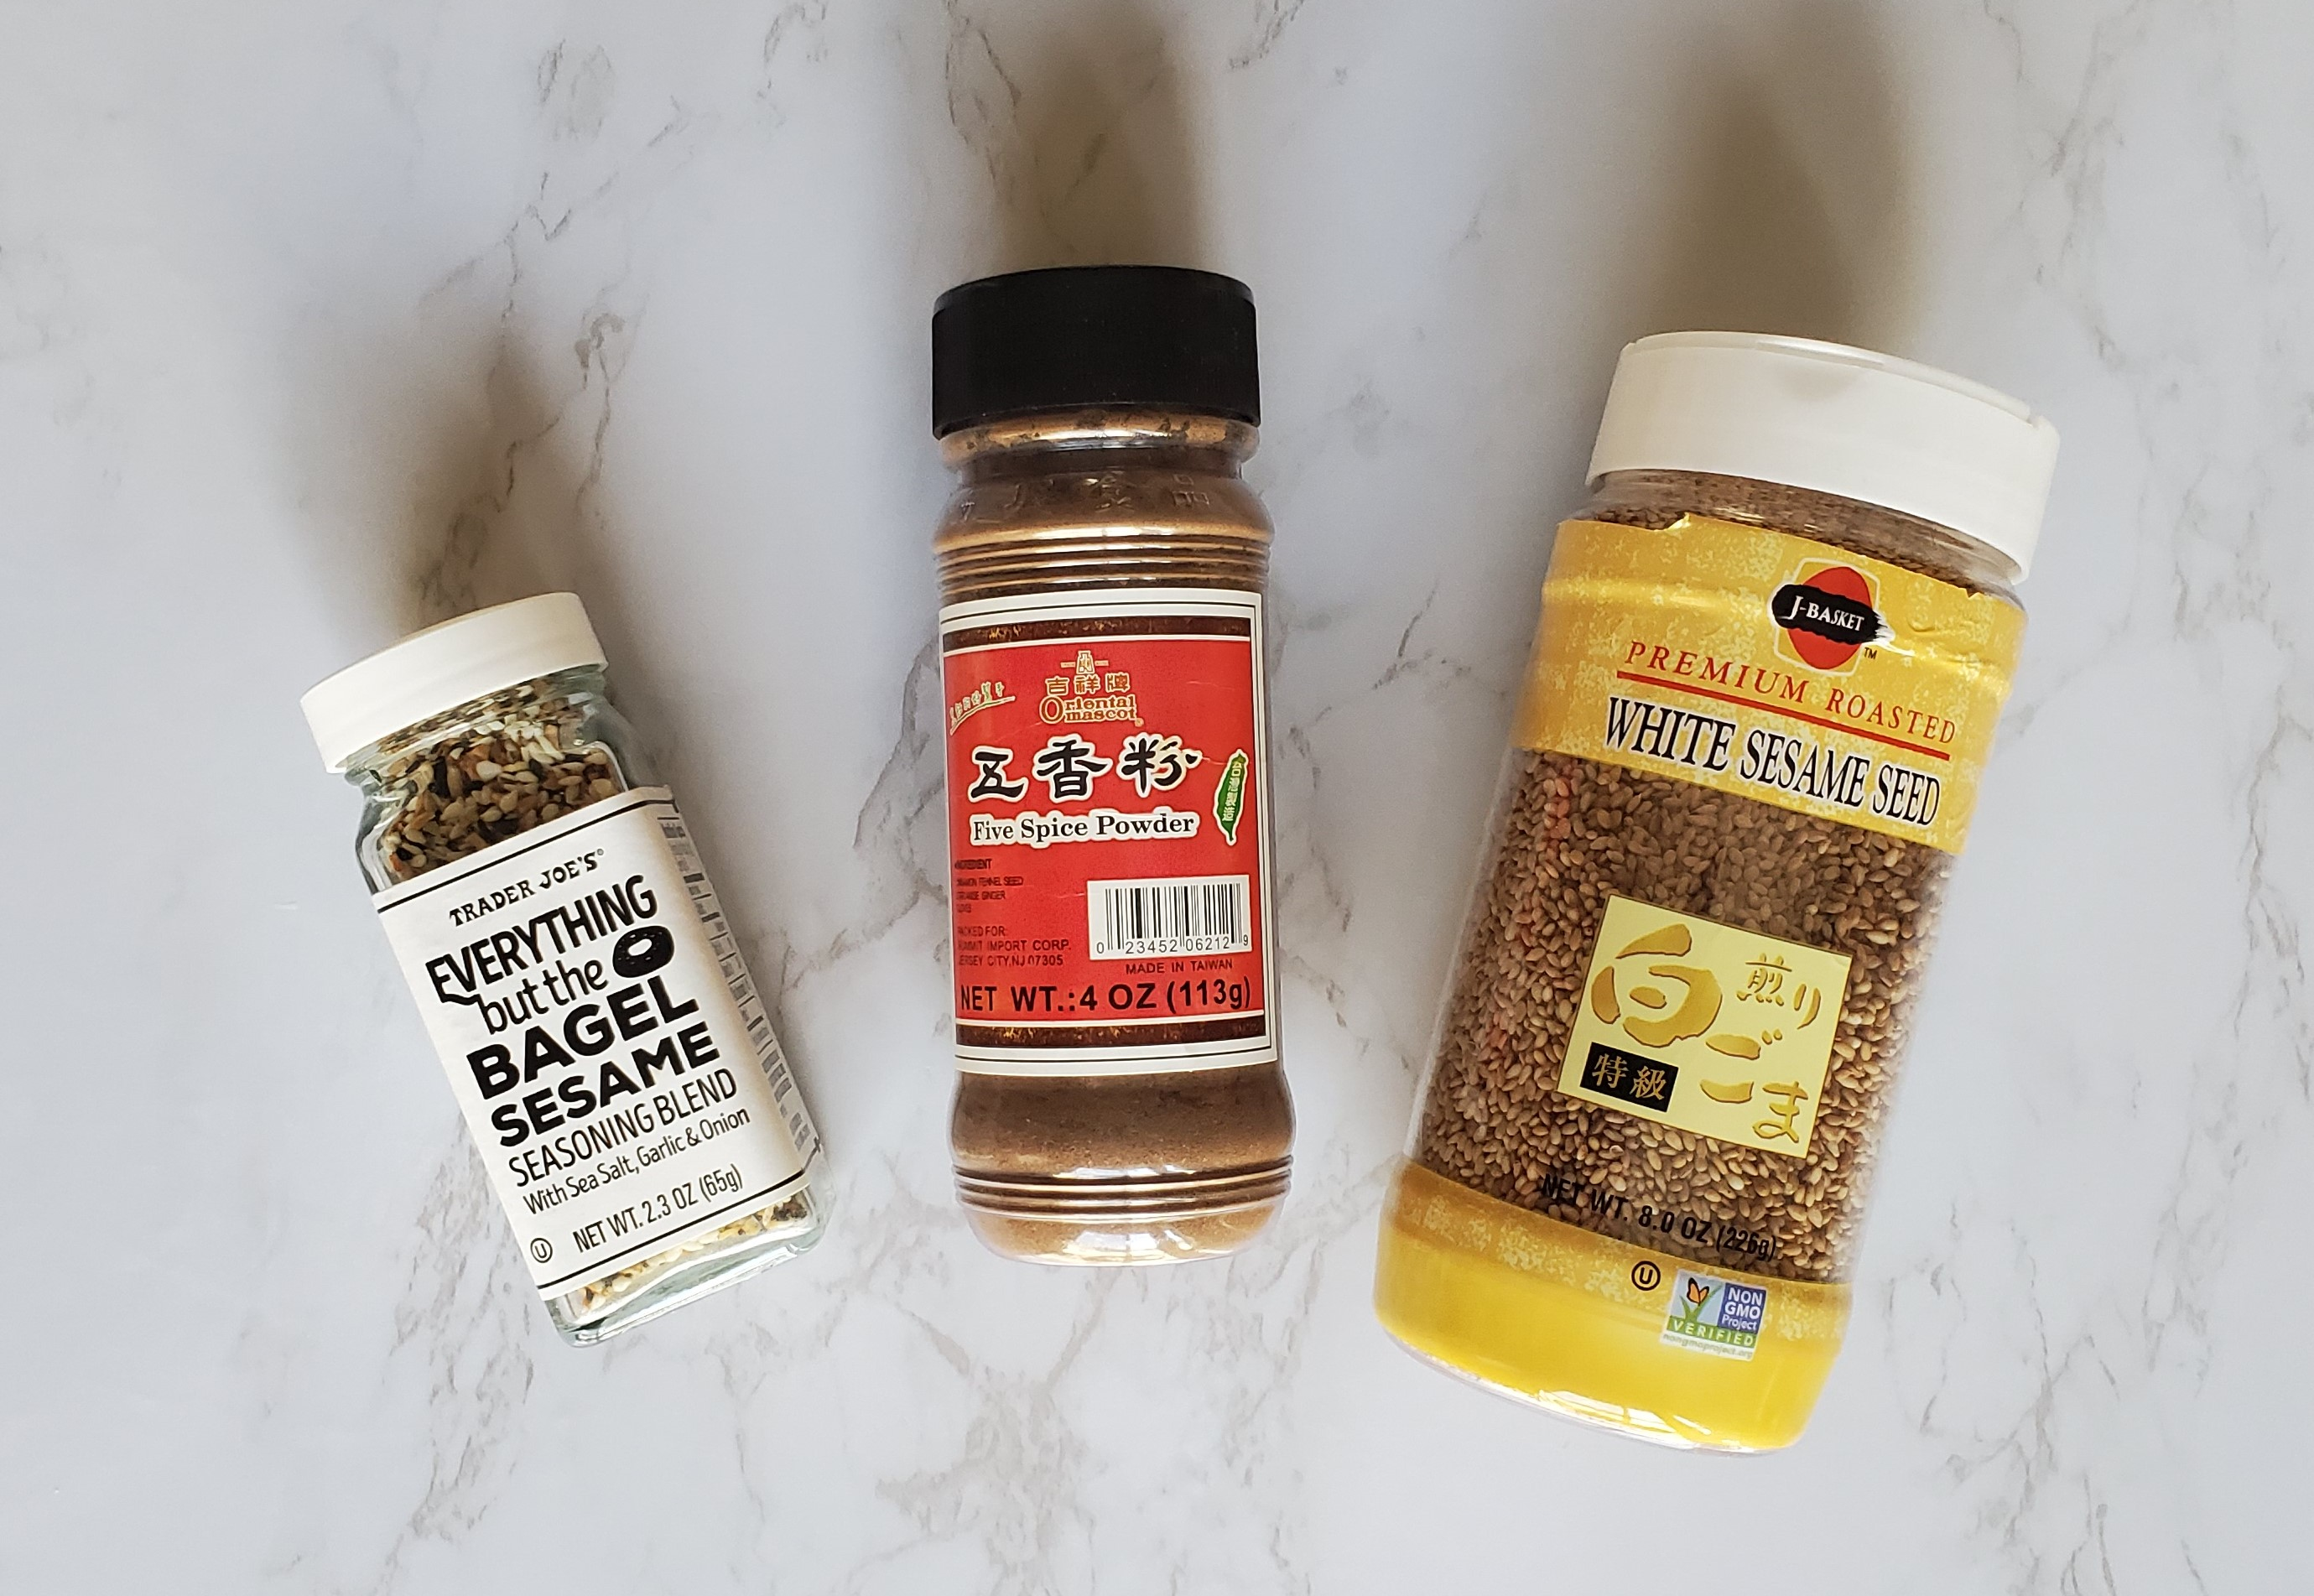 From left to right, a small jar of Trader Joe's Everything But the Bagel Seasoning, a jar or Chinese Five Spice and a large jar of white sesame seeds.